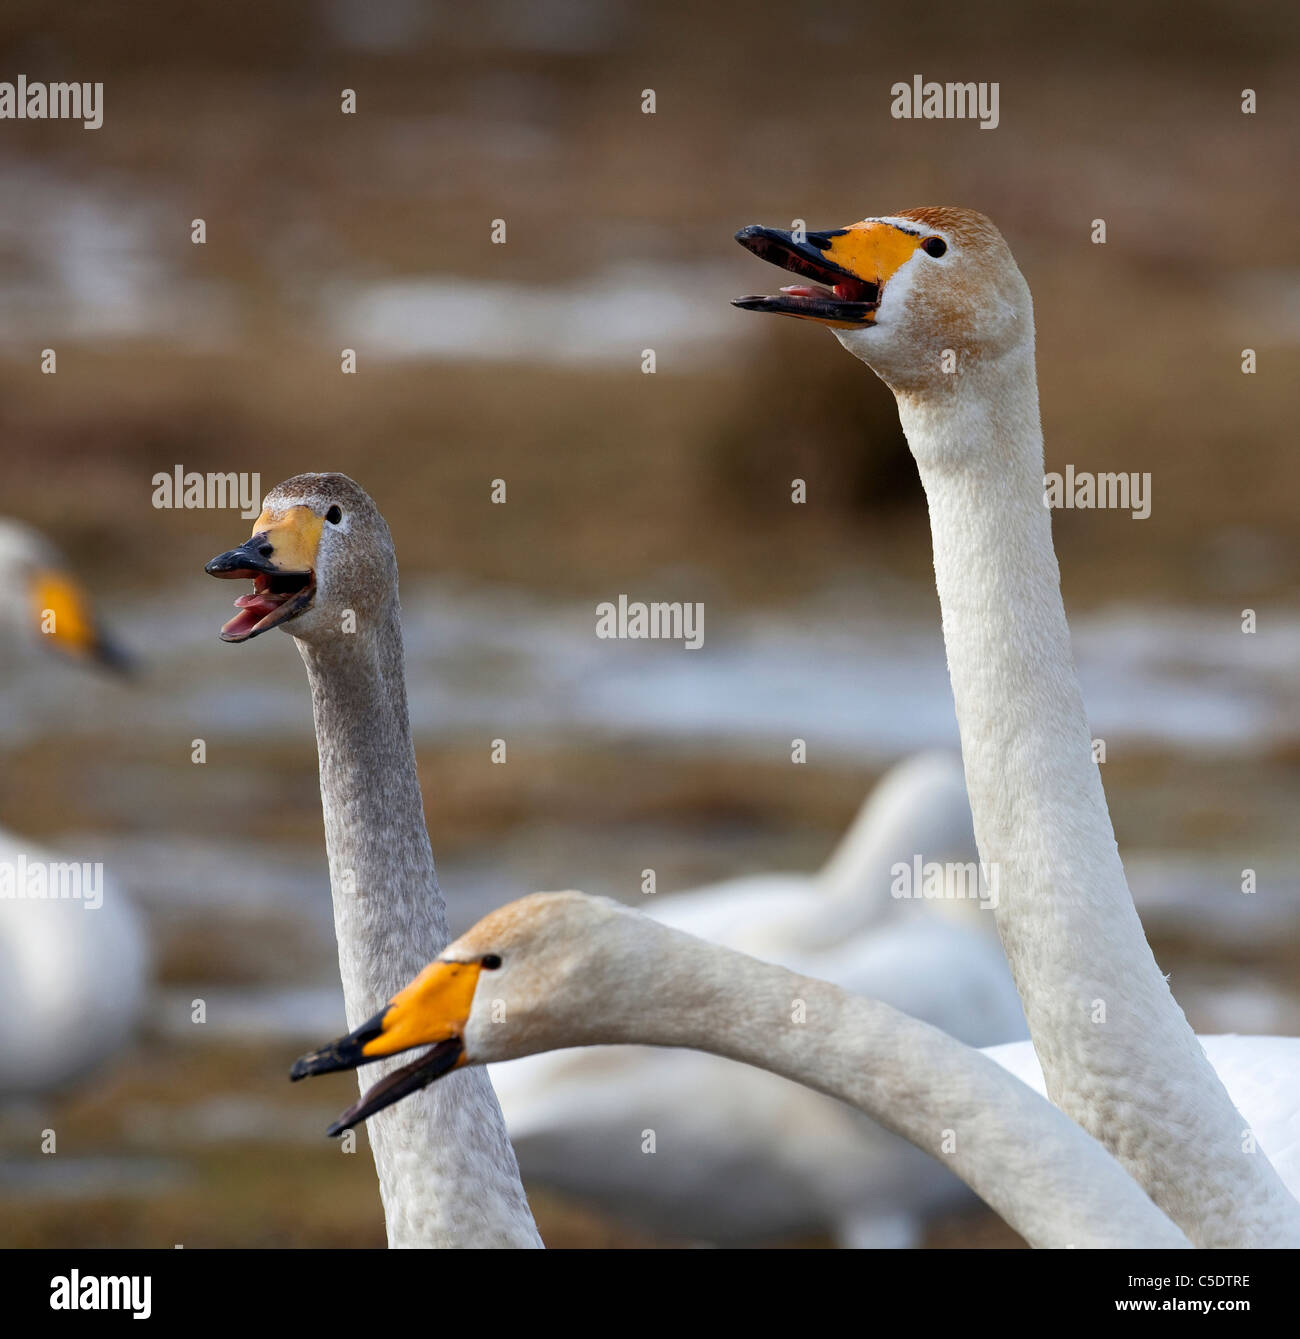 Close-up of whooper swans beaks against blurred background - Stock Image